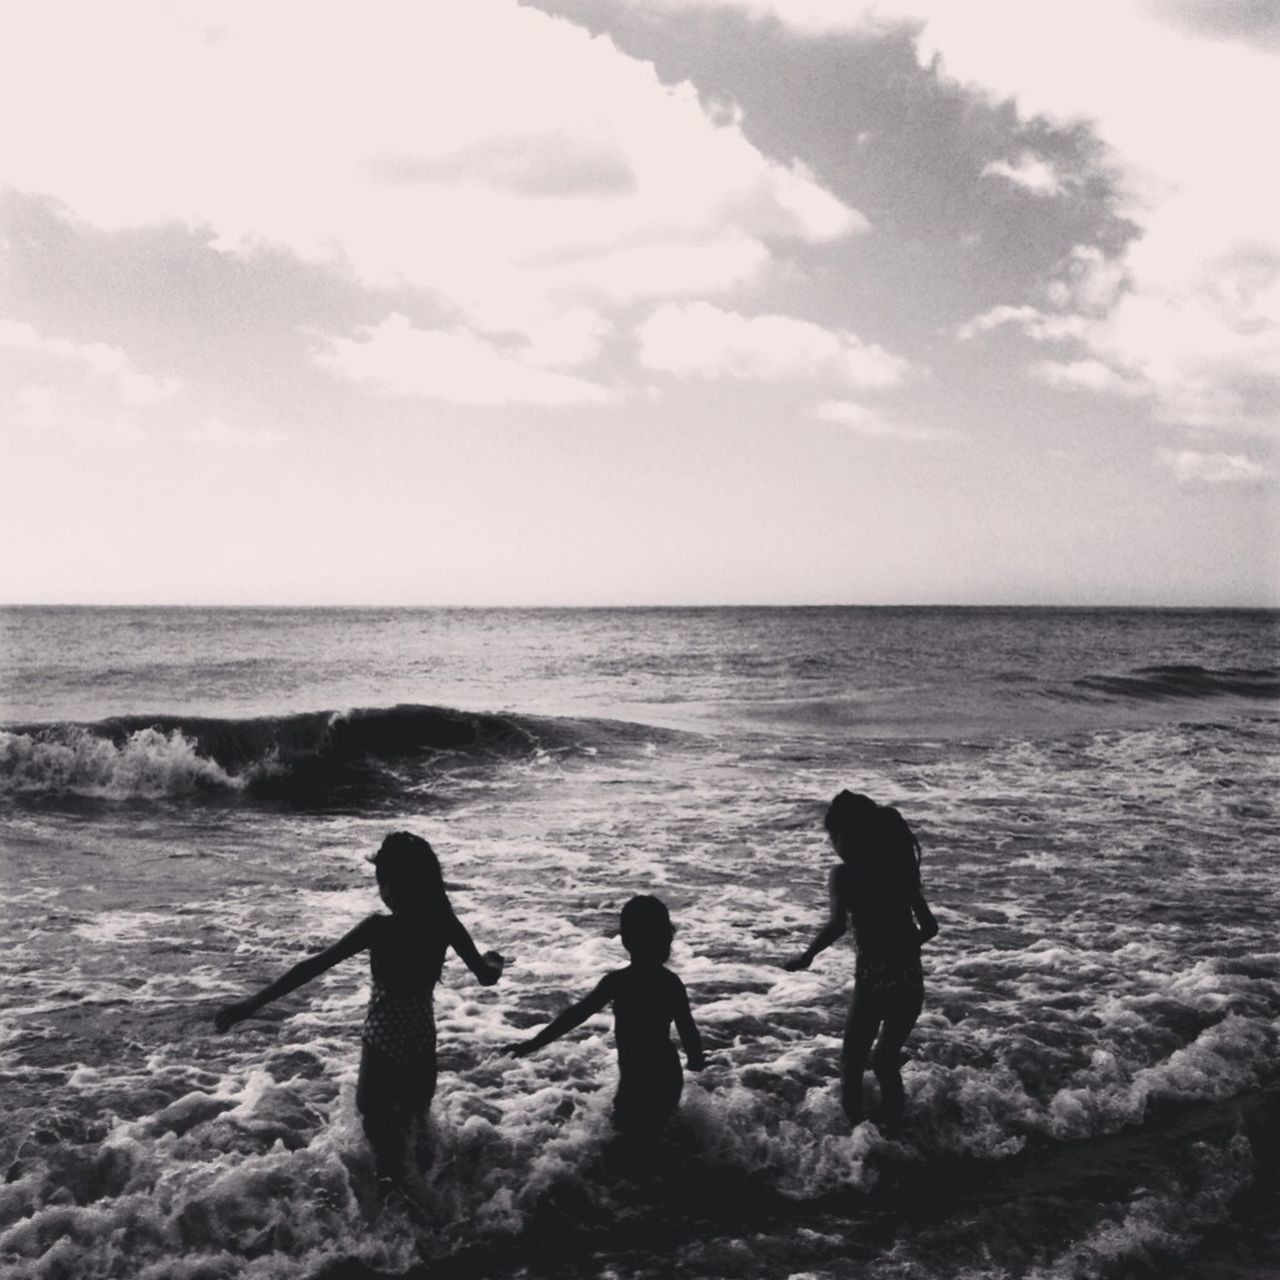 Silhouette Girls Playing On Waves At Shore